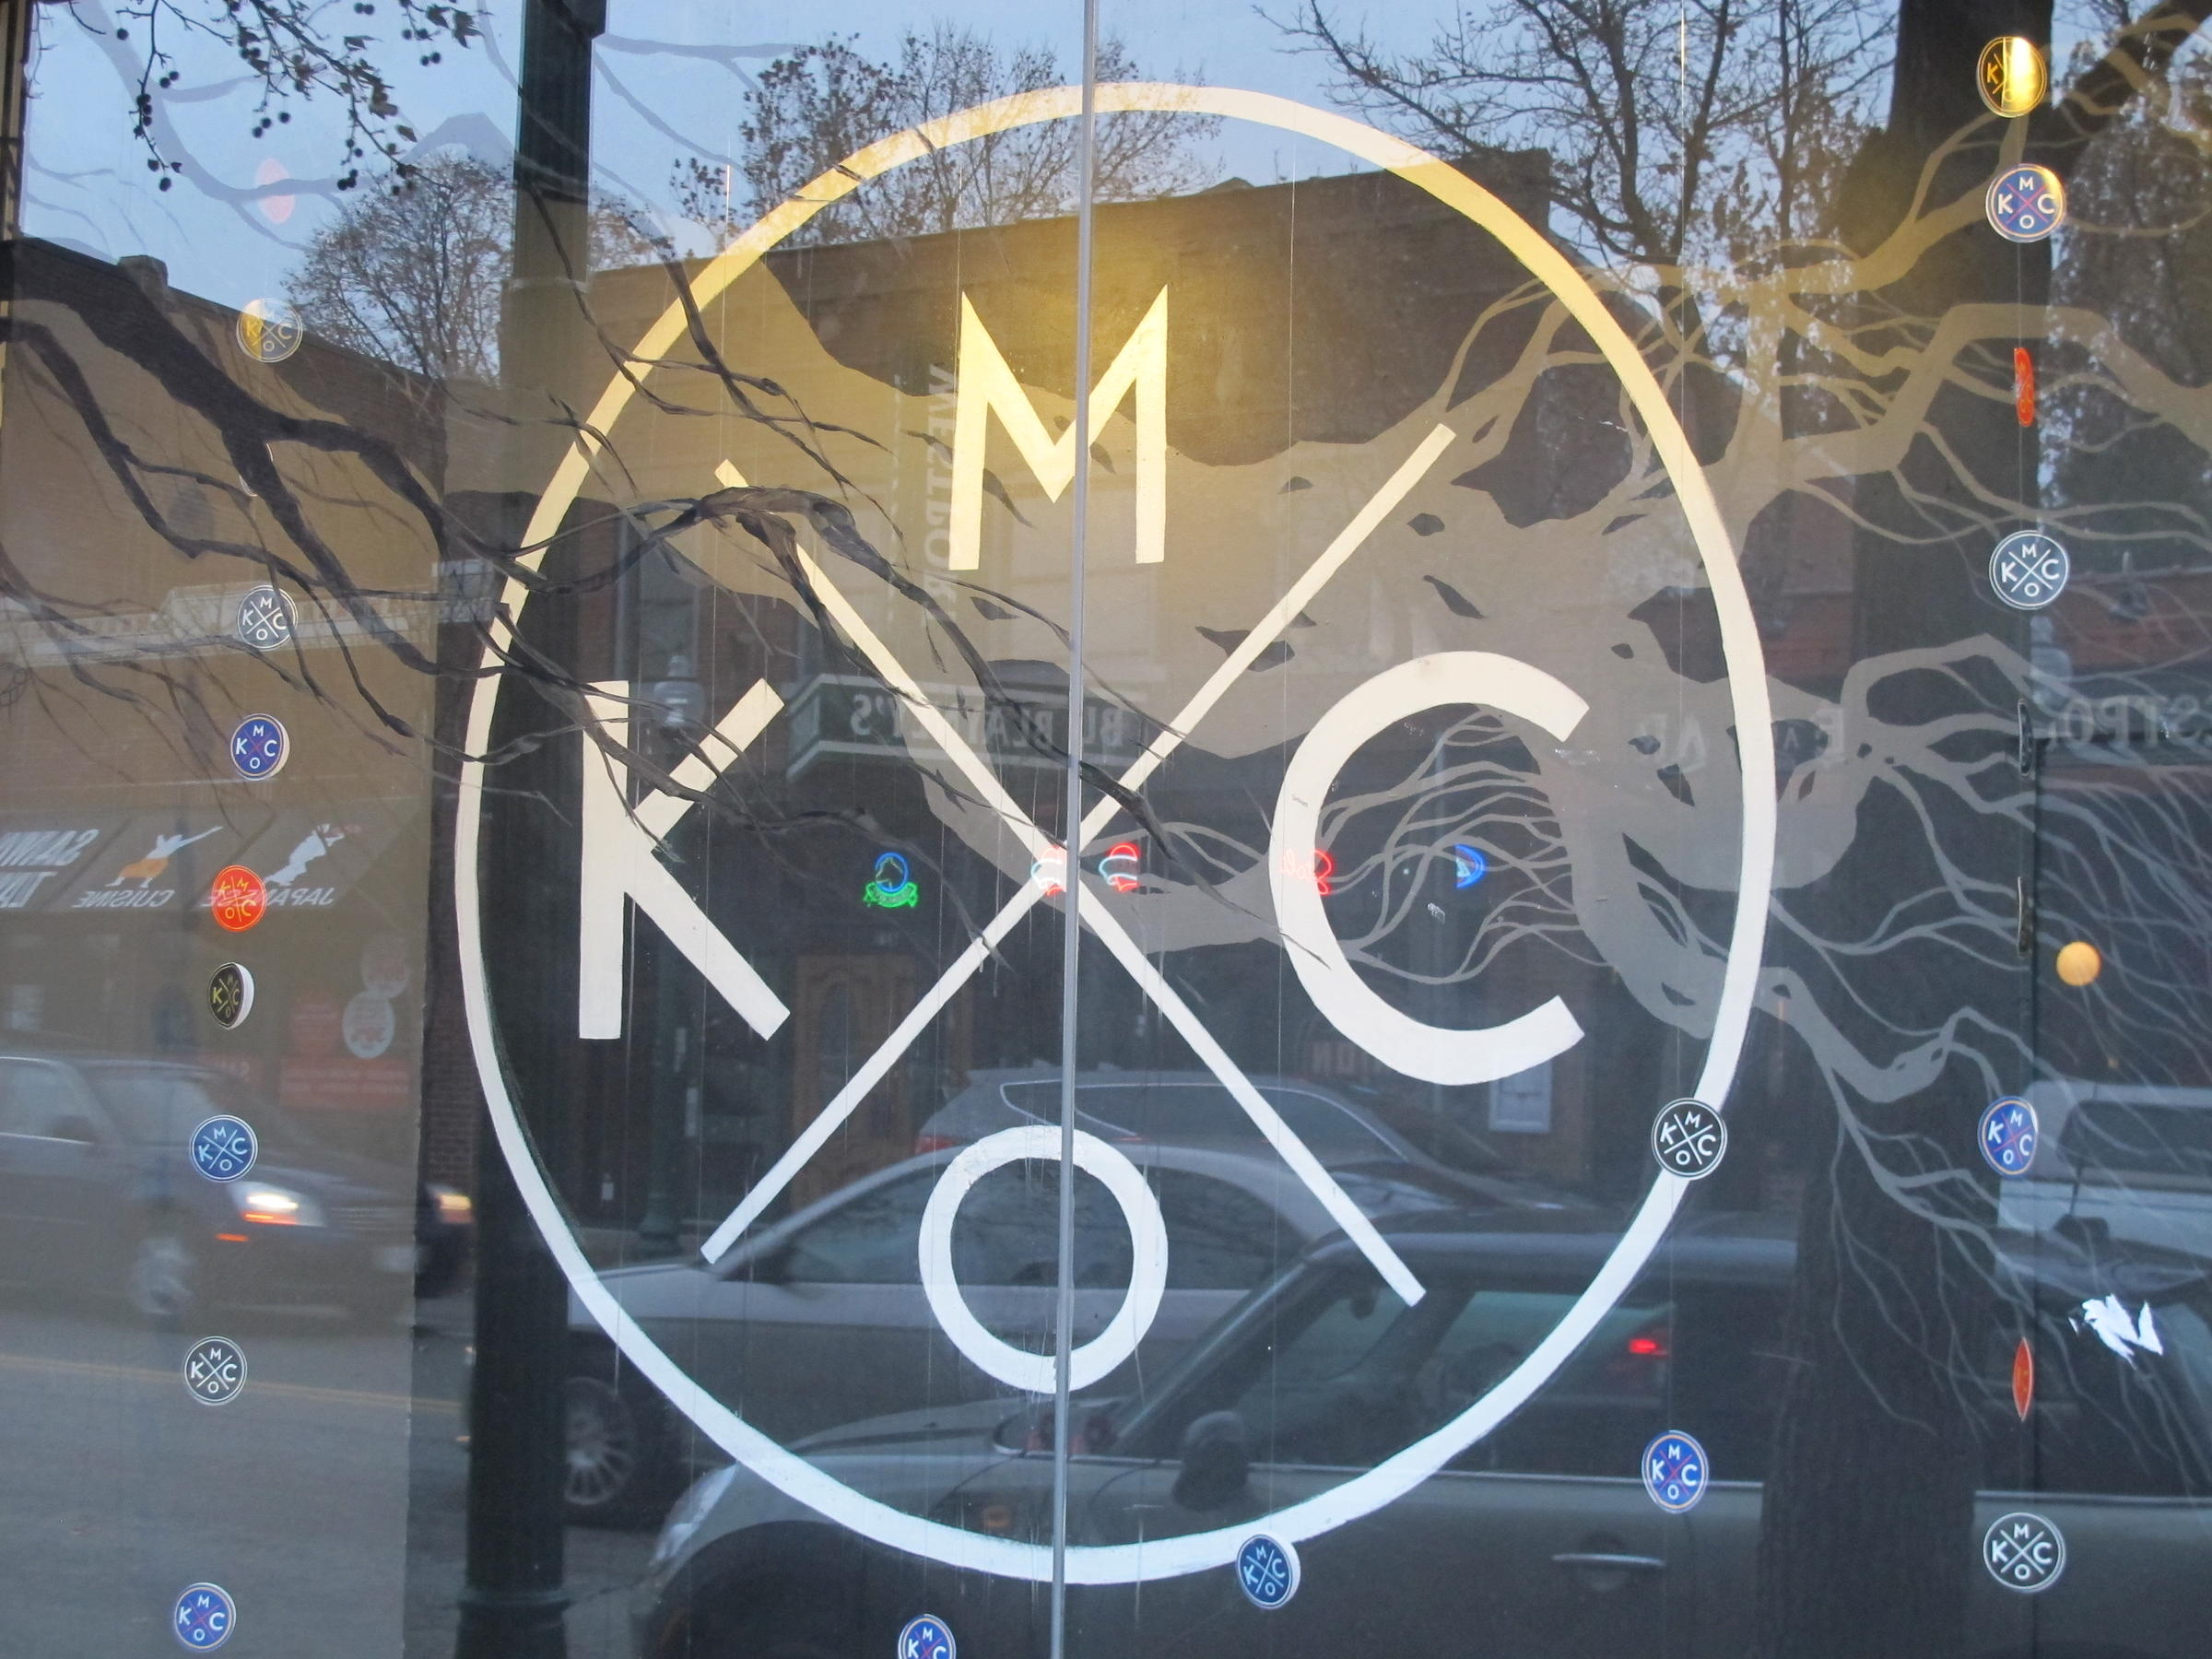 Shirt design kansas city - This Kansas City Mo Symbol Is Often Found Throughout The Metro On Shirts And Hats This Is Part Of A Window Display At The Bunker A Retail Store In